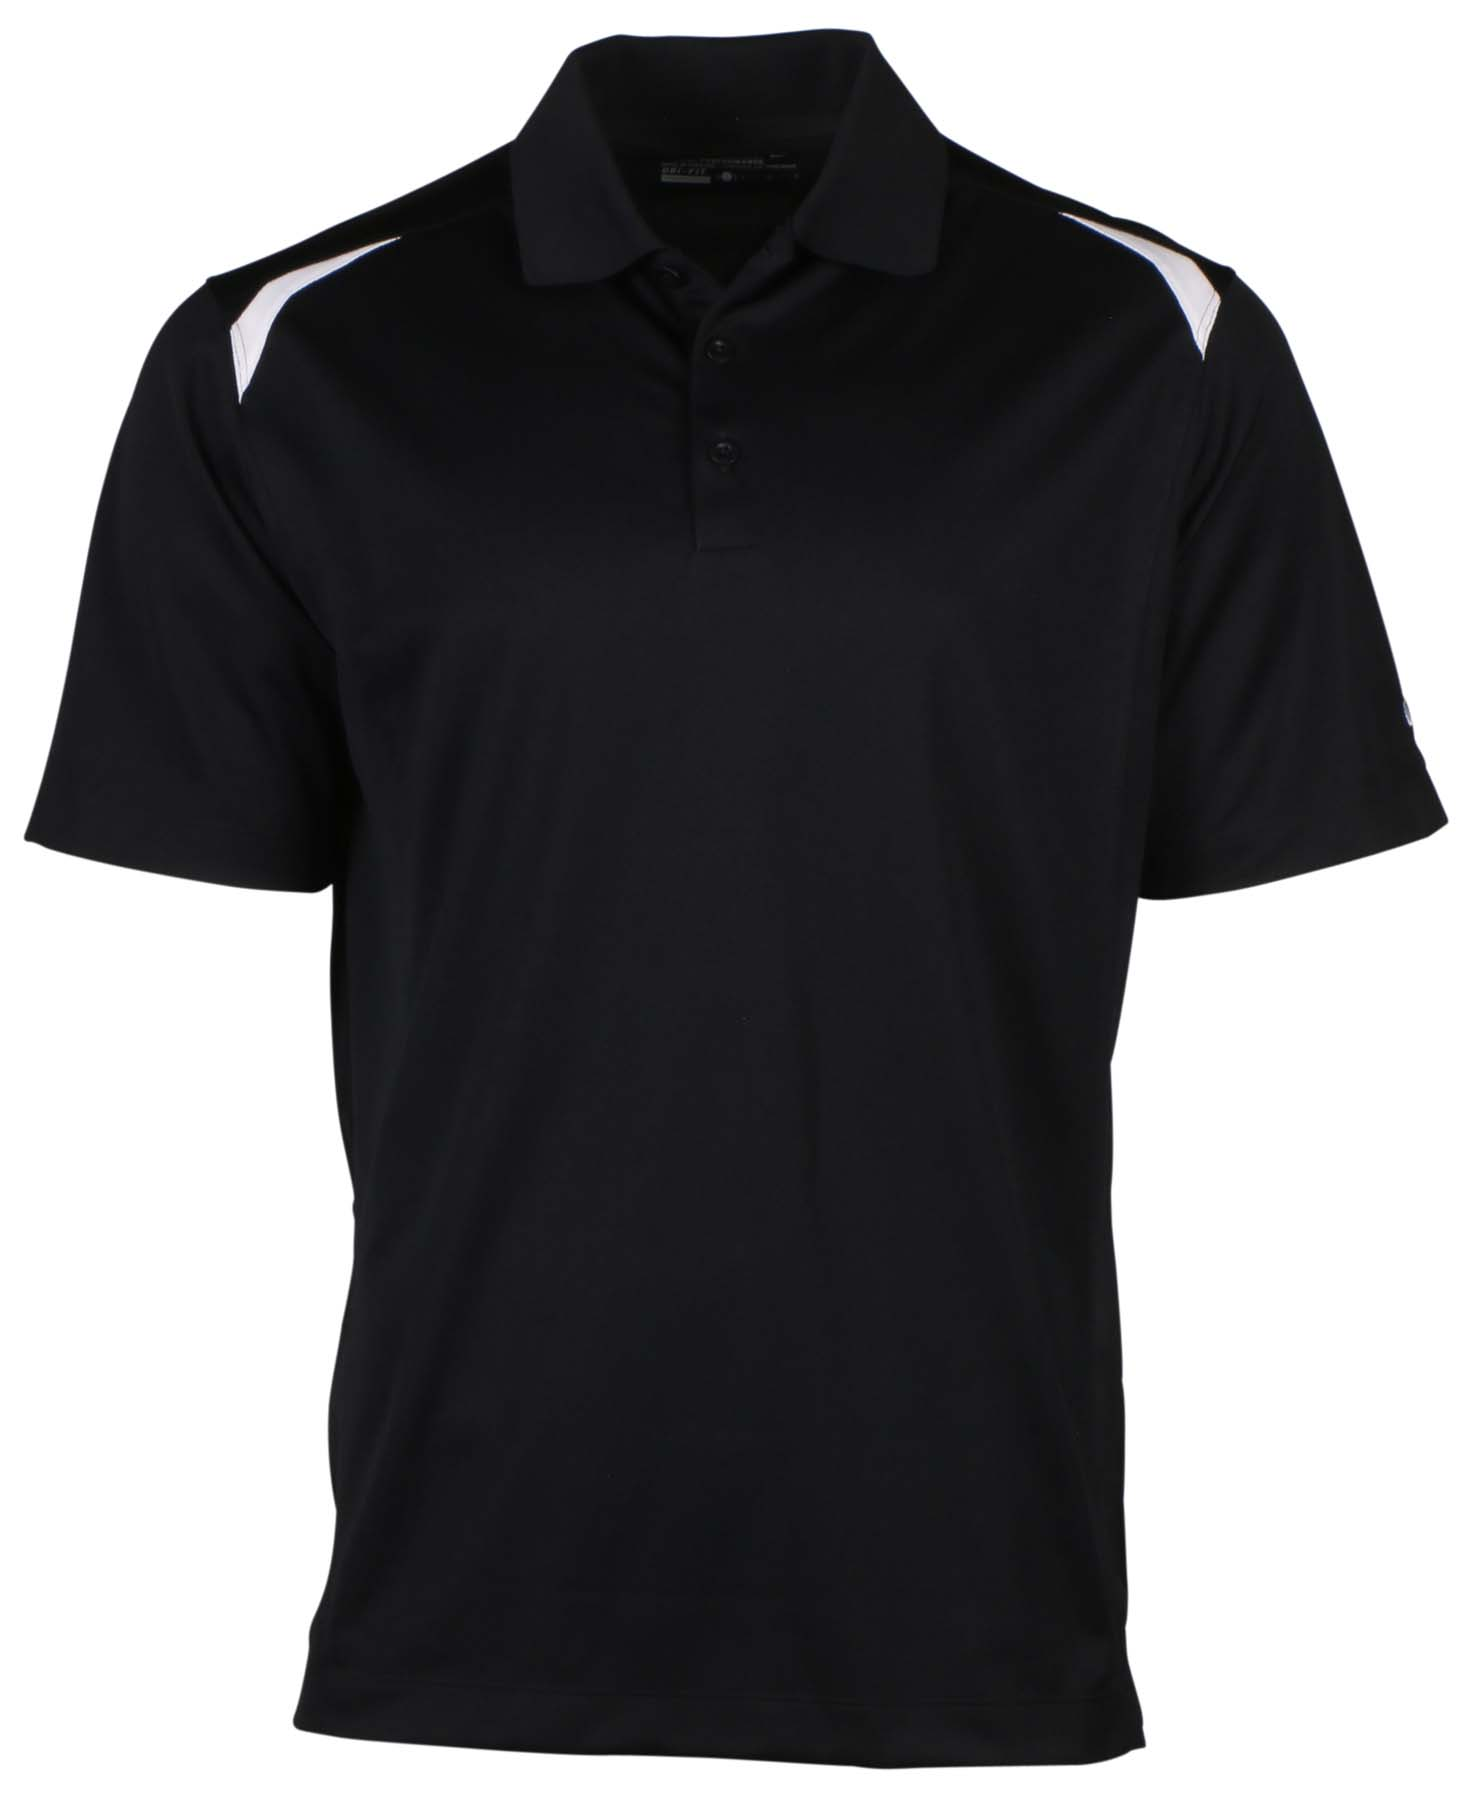 nike men 39 s dri fit tour performance golf polo shirt ebay